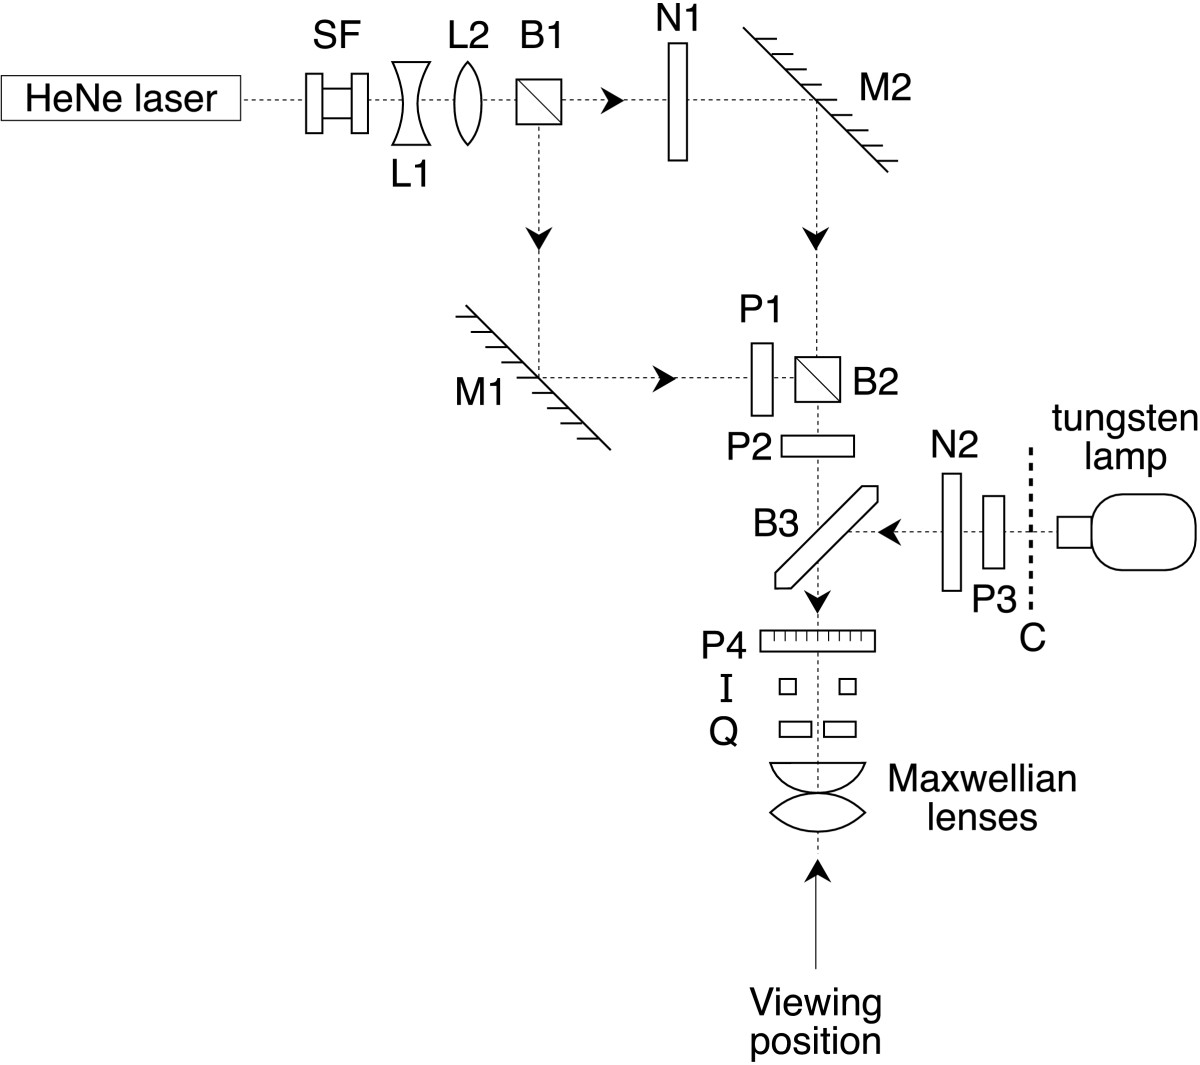 https://static-content.springer.com/image/art%3A10.1186%2F1471-2415-5-22/MediaObjects/12886_2005_Article_55_Fig1_HTML.jpg